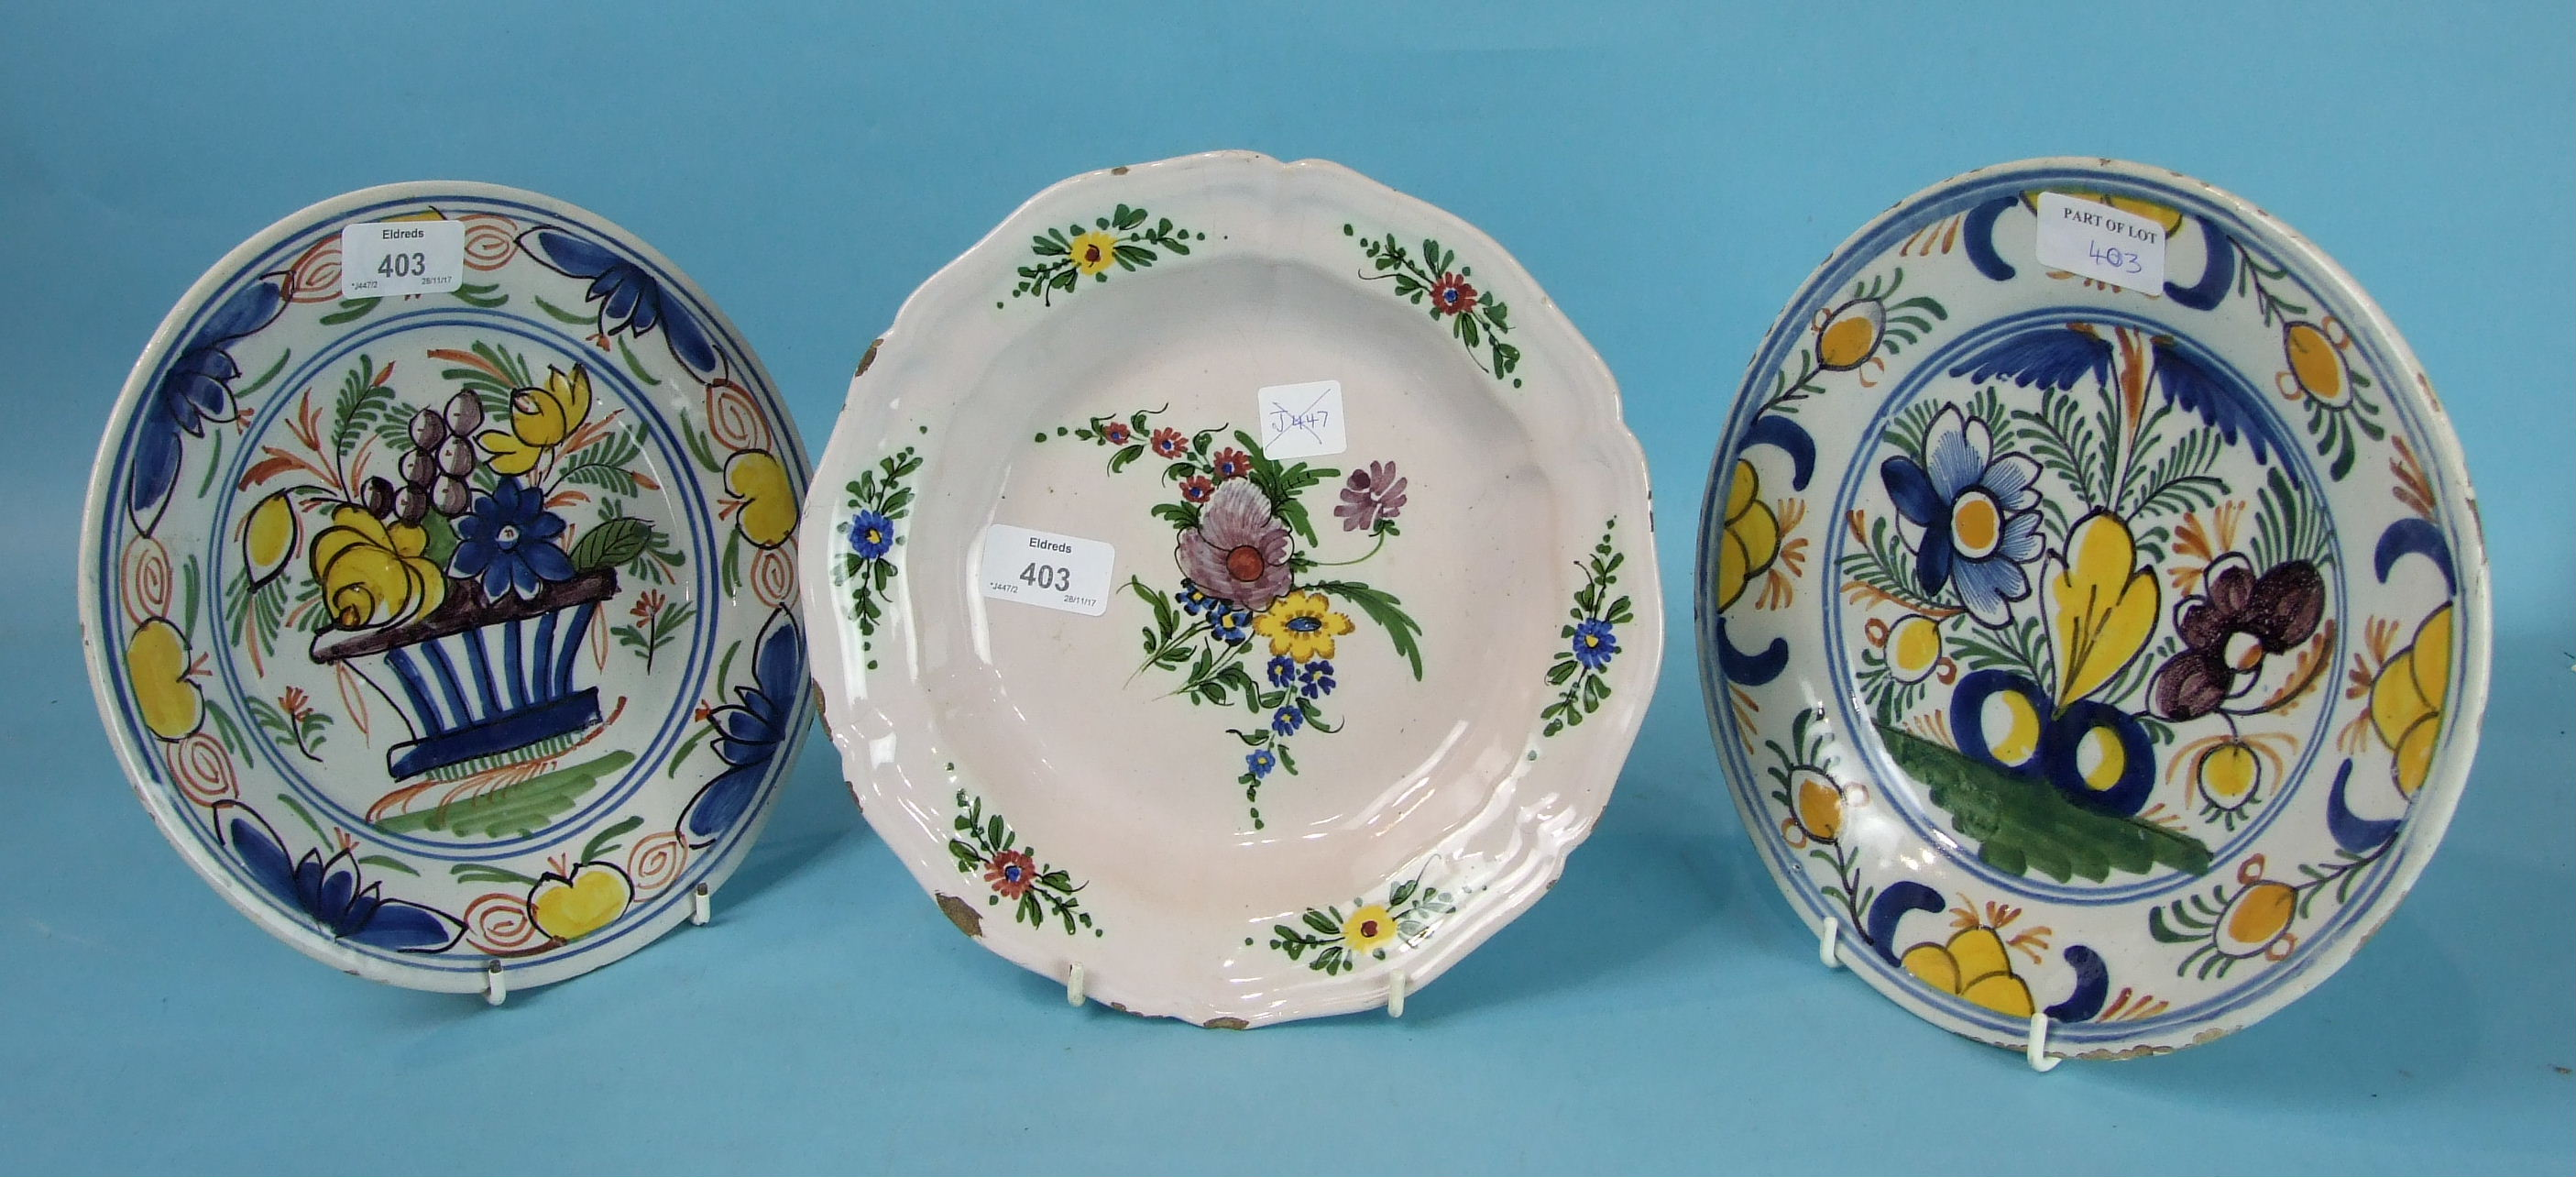 Lot 403 - Three 18th/19th century Dutch Delft plates painted with flowers, (3).